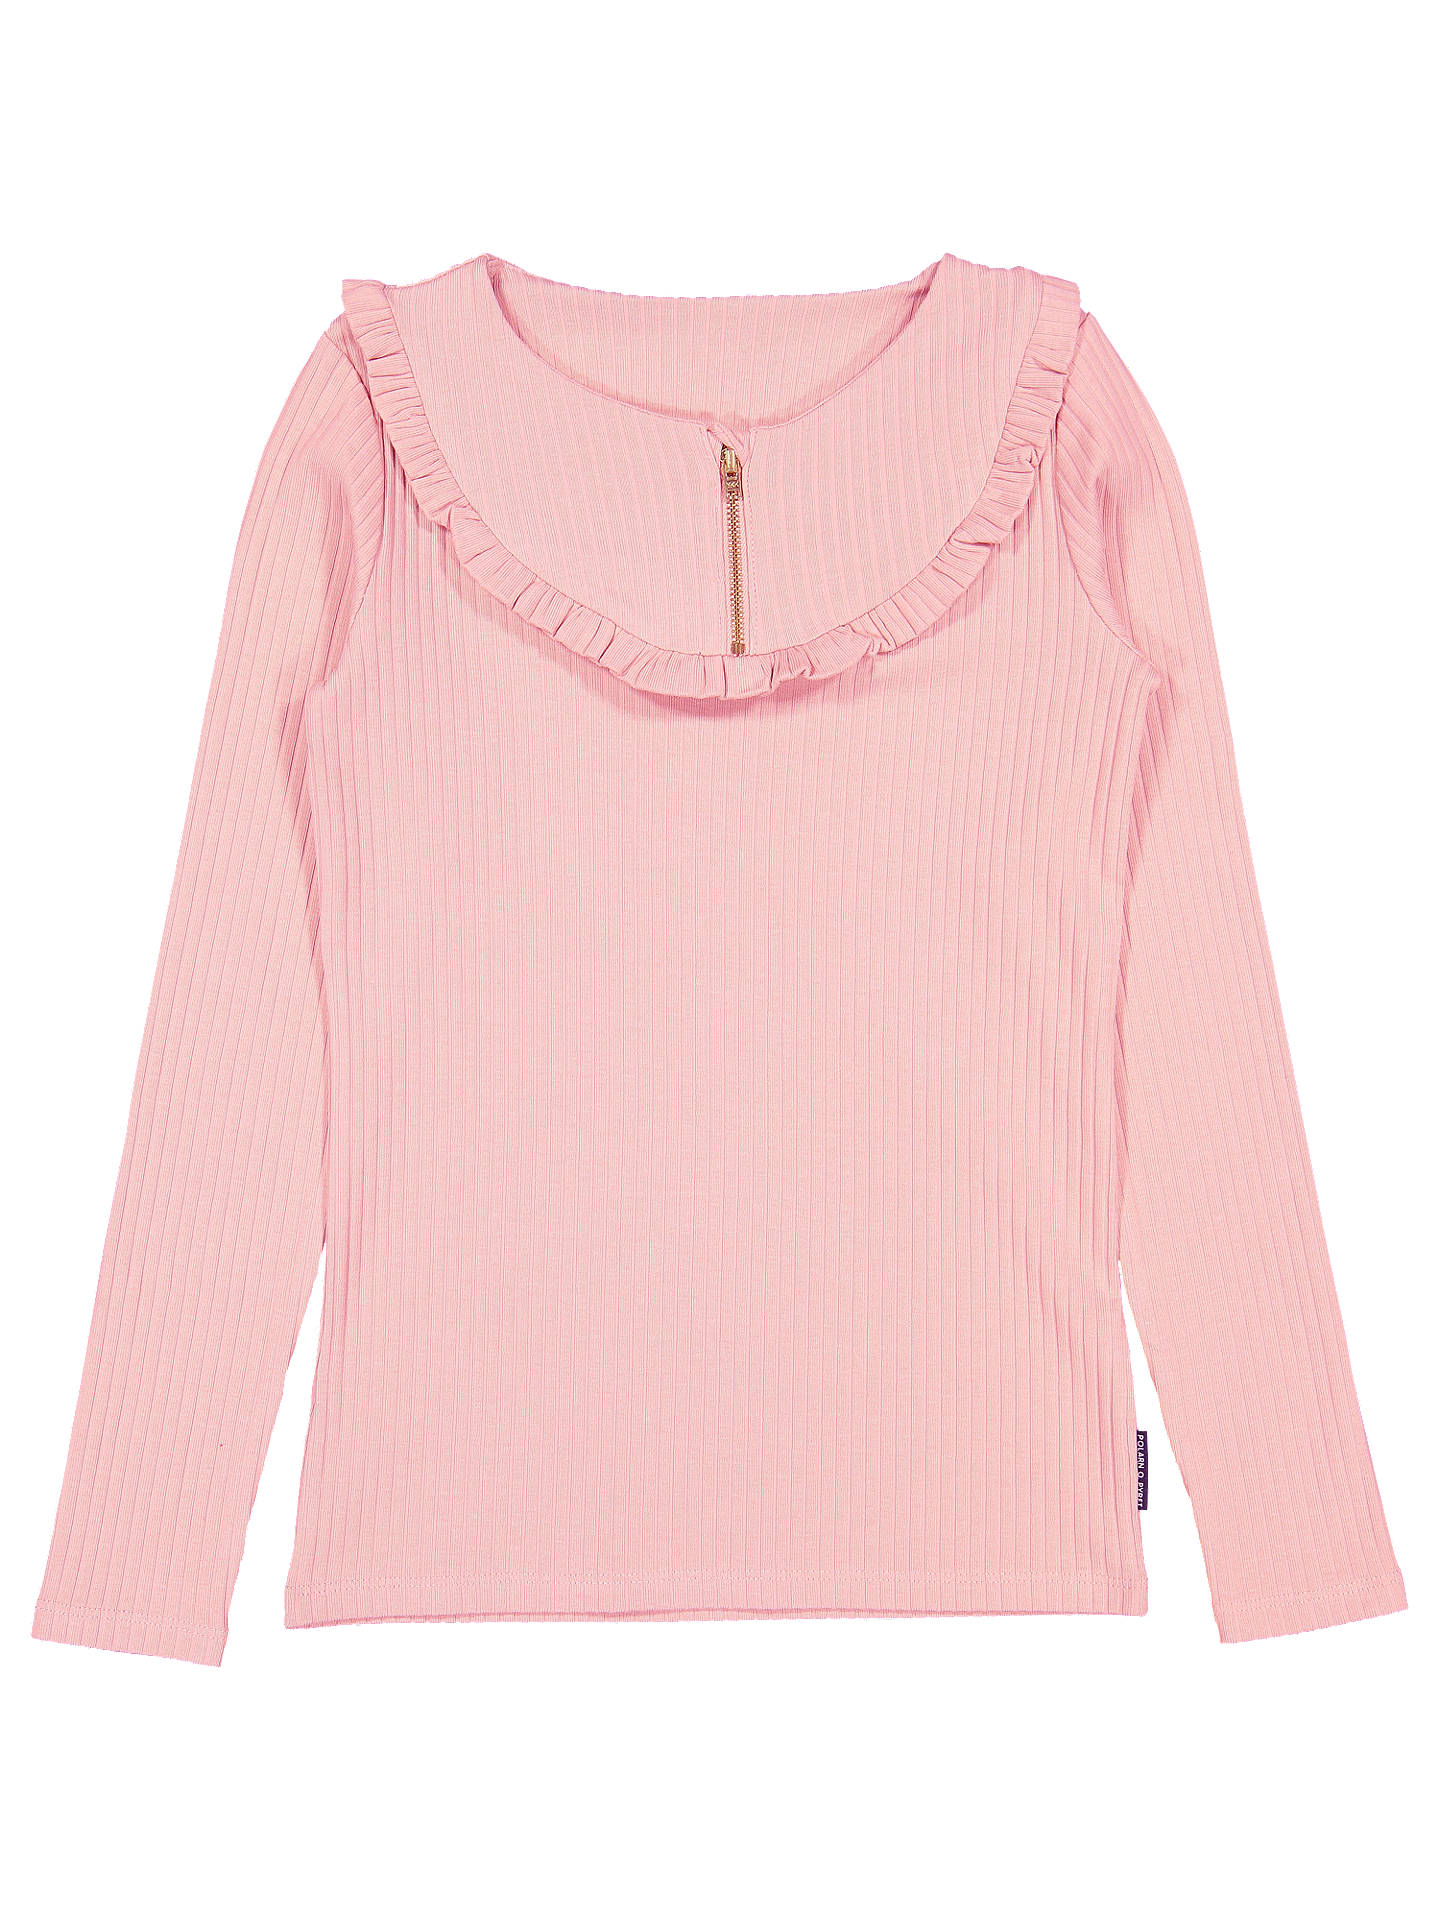 BuyPolarn O. Pyret Children's Ruffle Trim Rib Top, Pink, 6-8 years Online at johnlewis.com